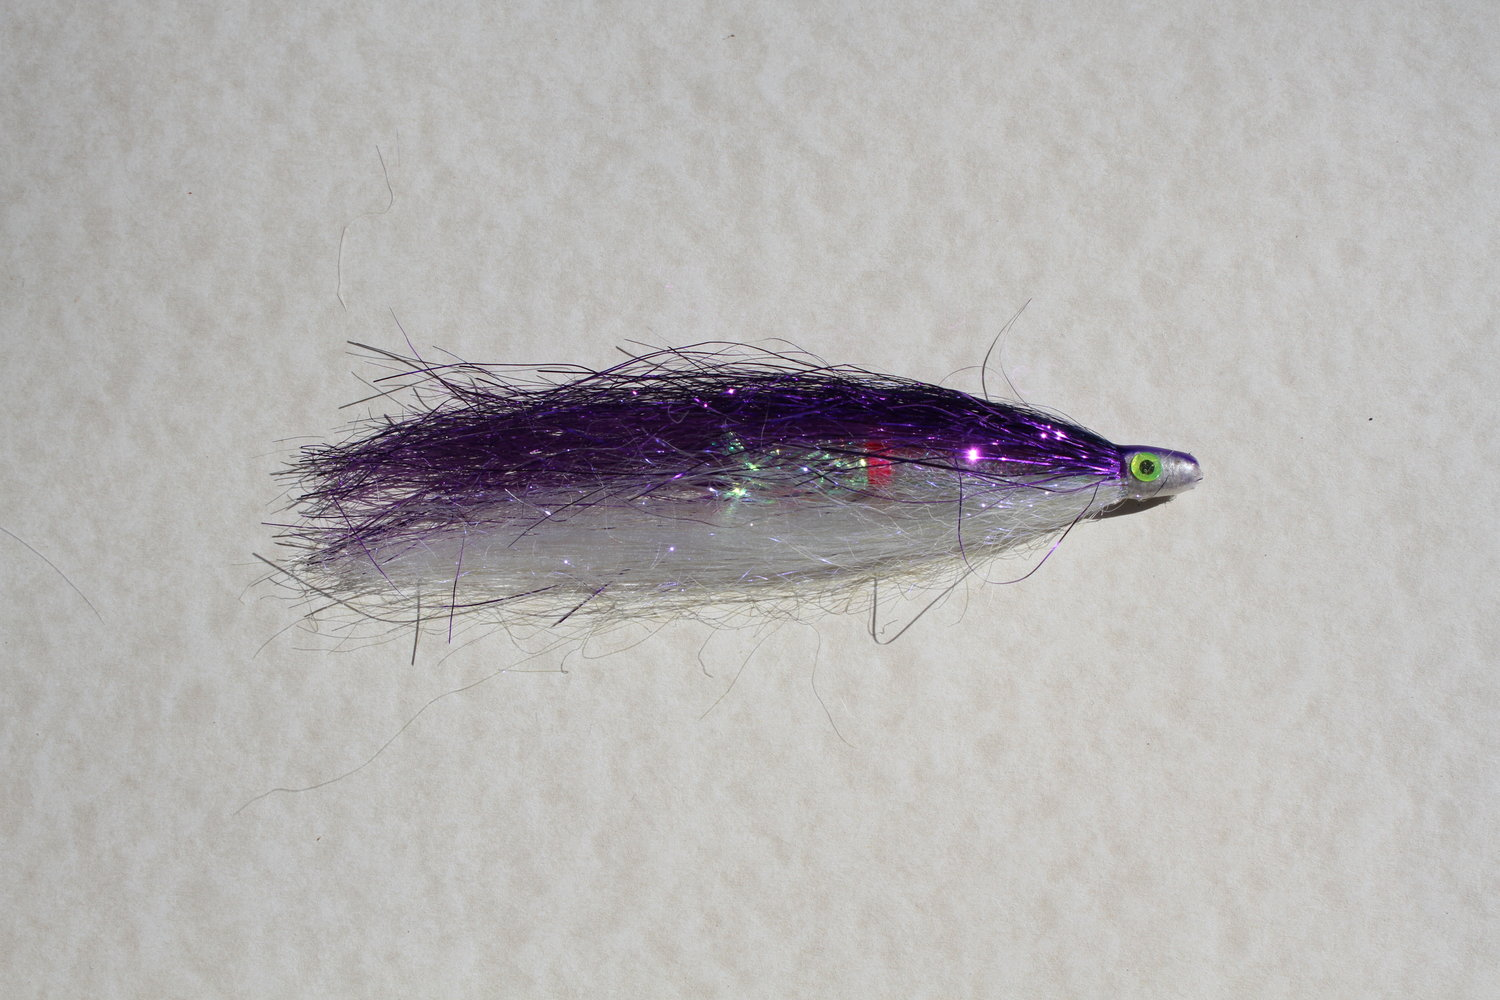 black red and green 3 x aluminium tube fly for salmon or sea trout